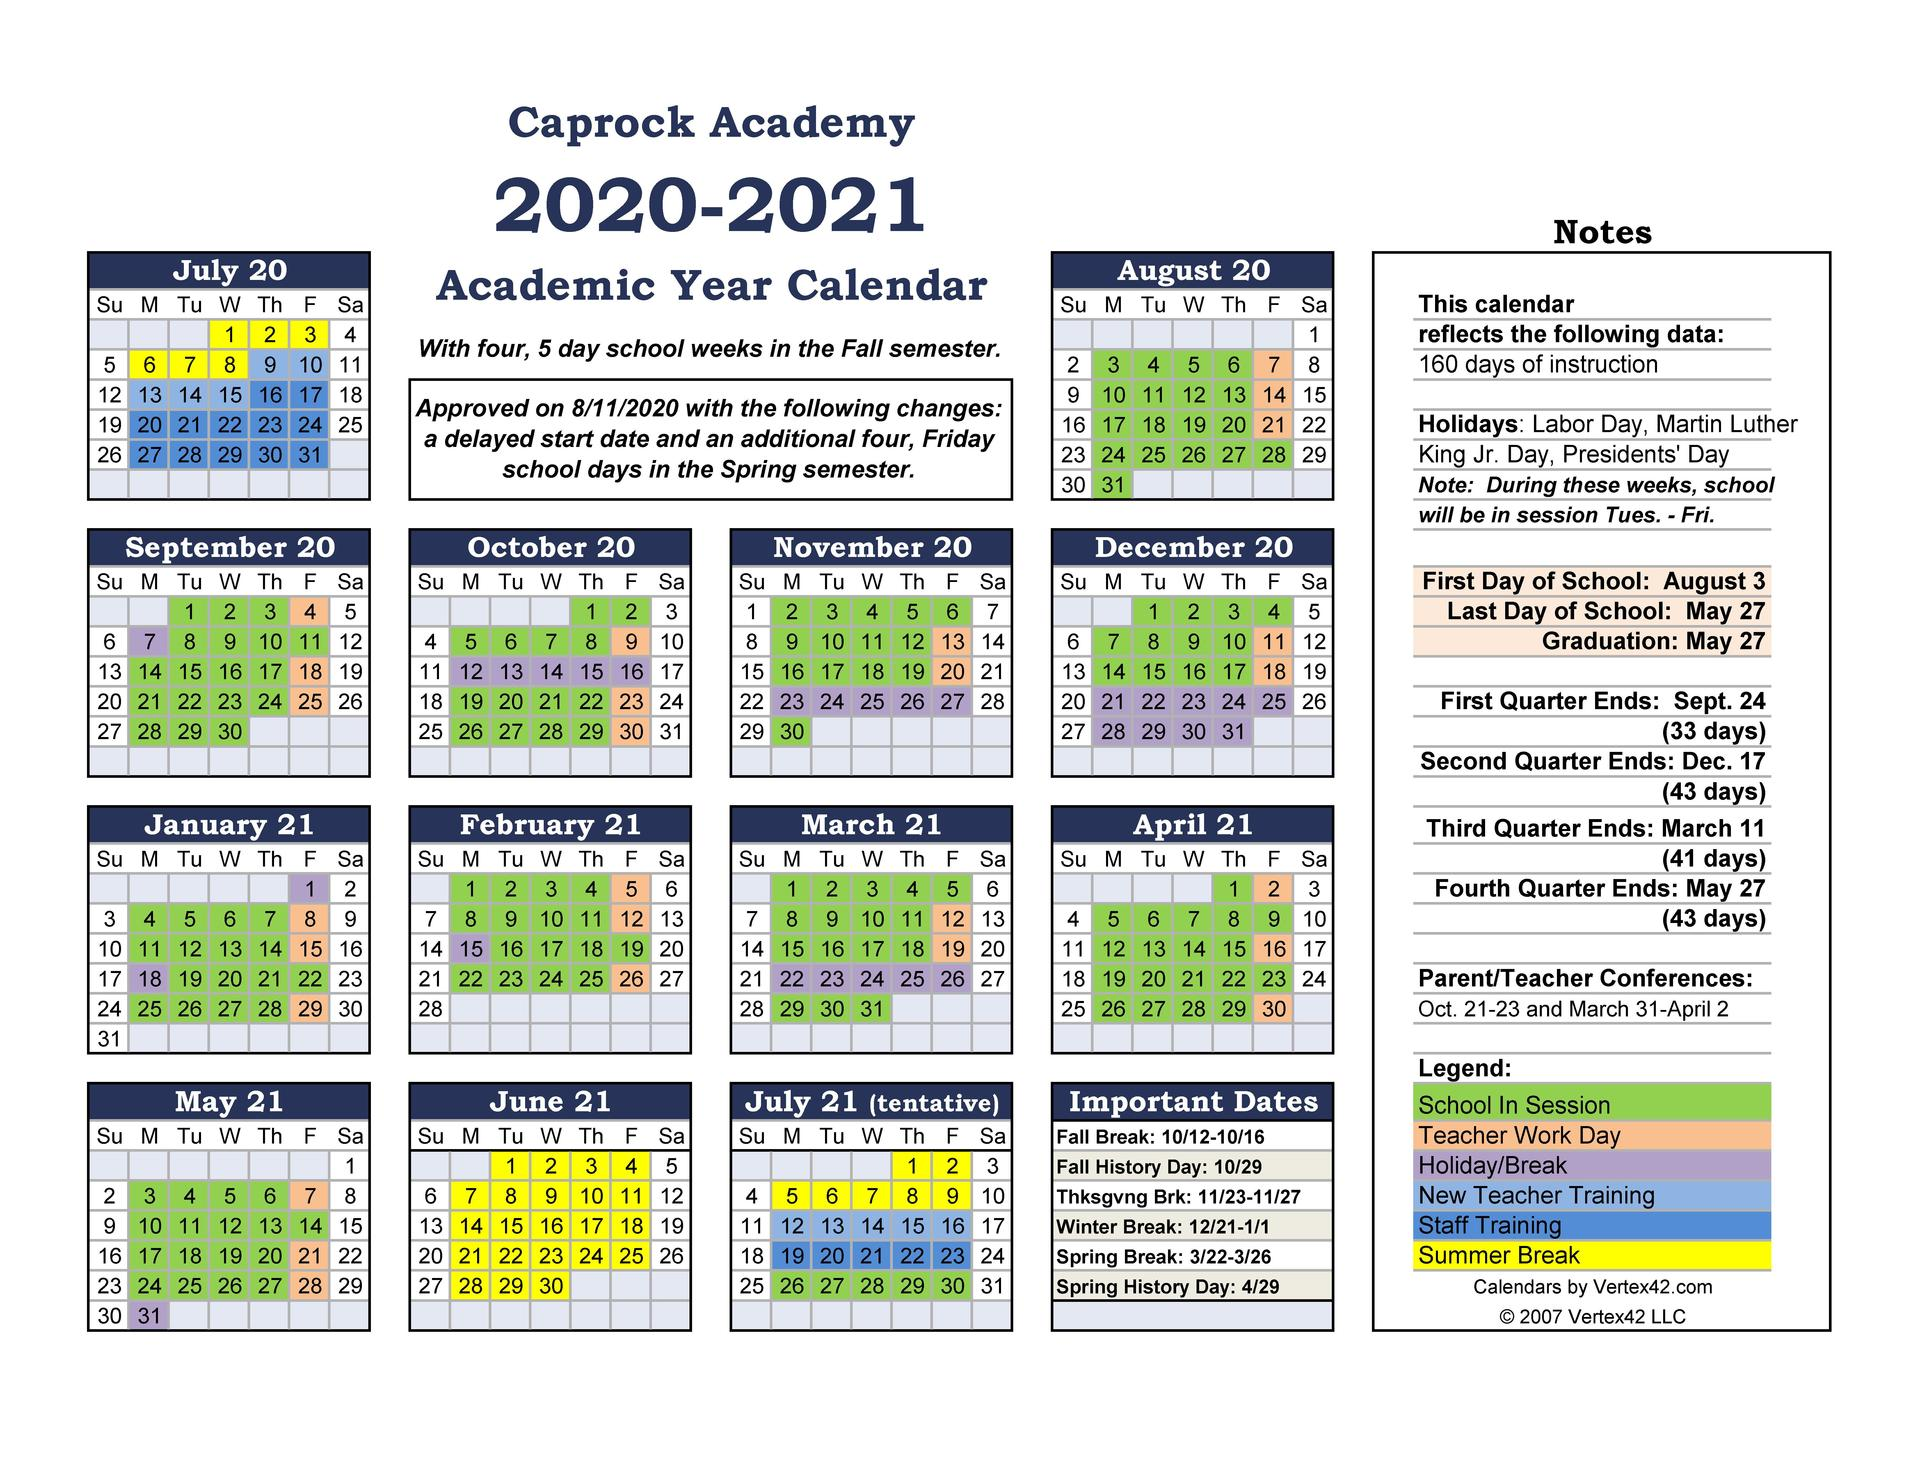 Academic Calendar for 2020-2021updated 8-11-2020